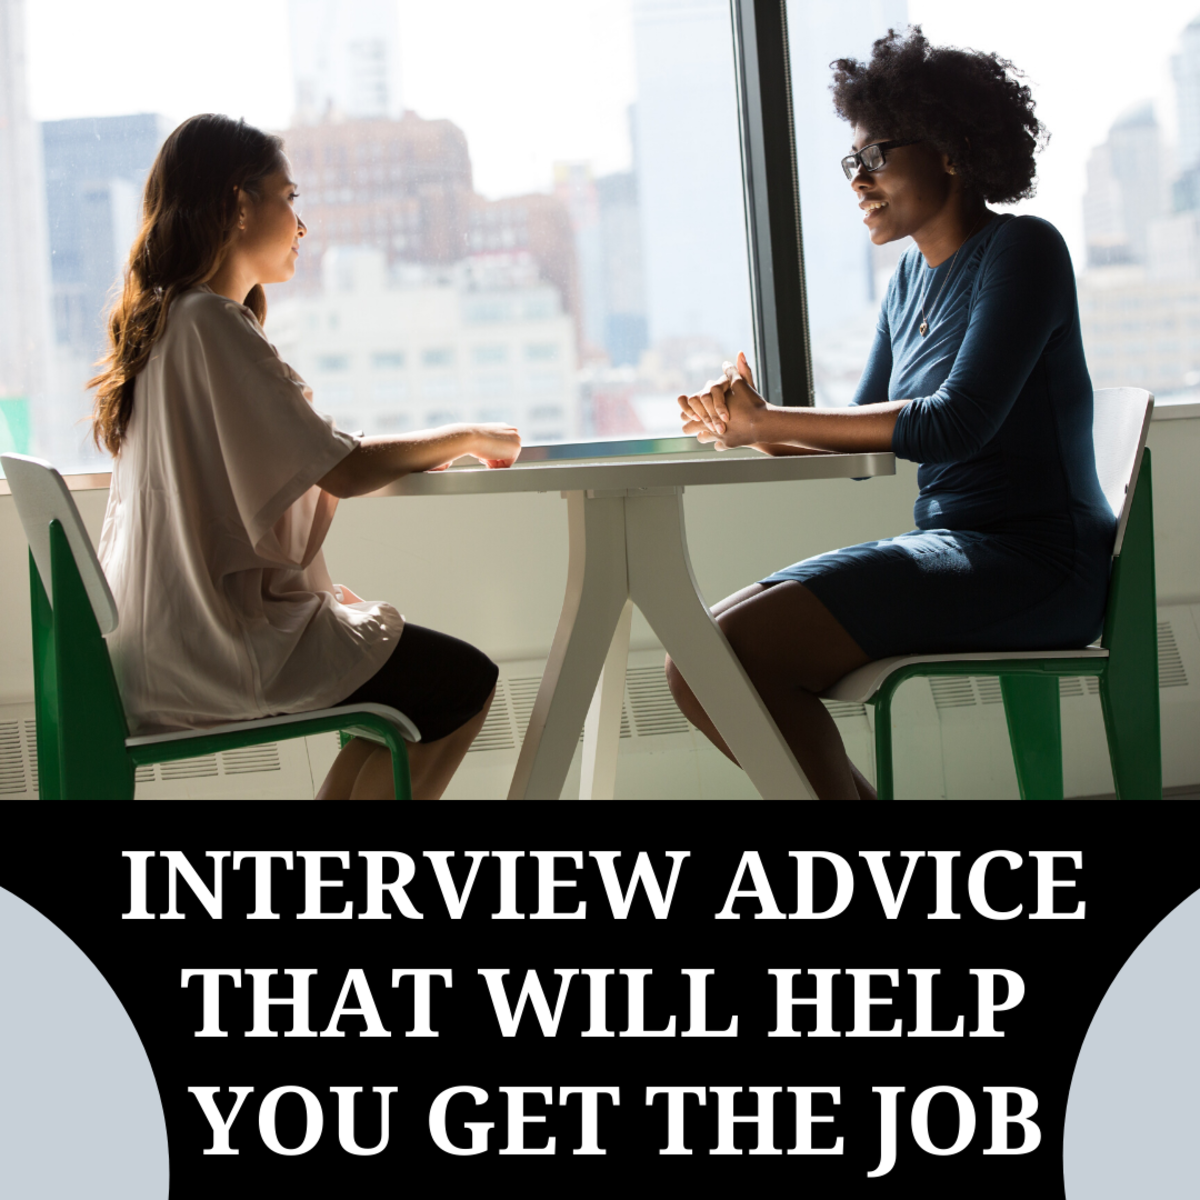 Interview Advice That Will Help You Get the Job